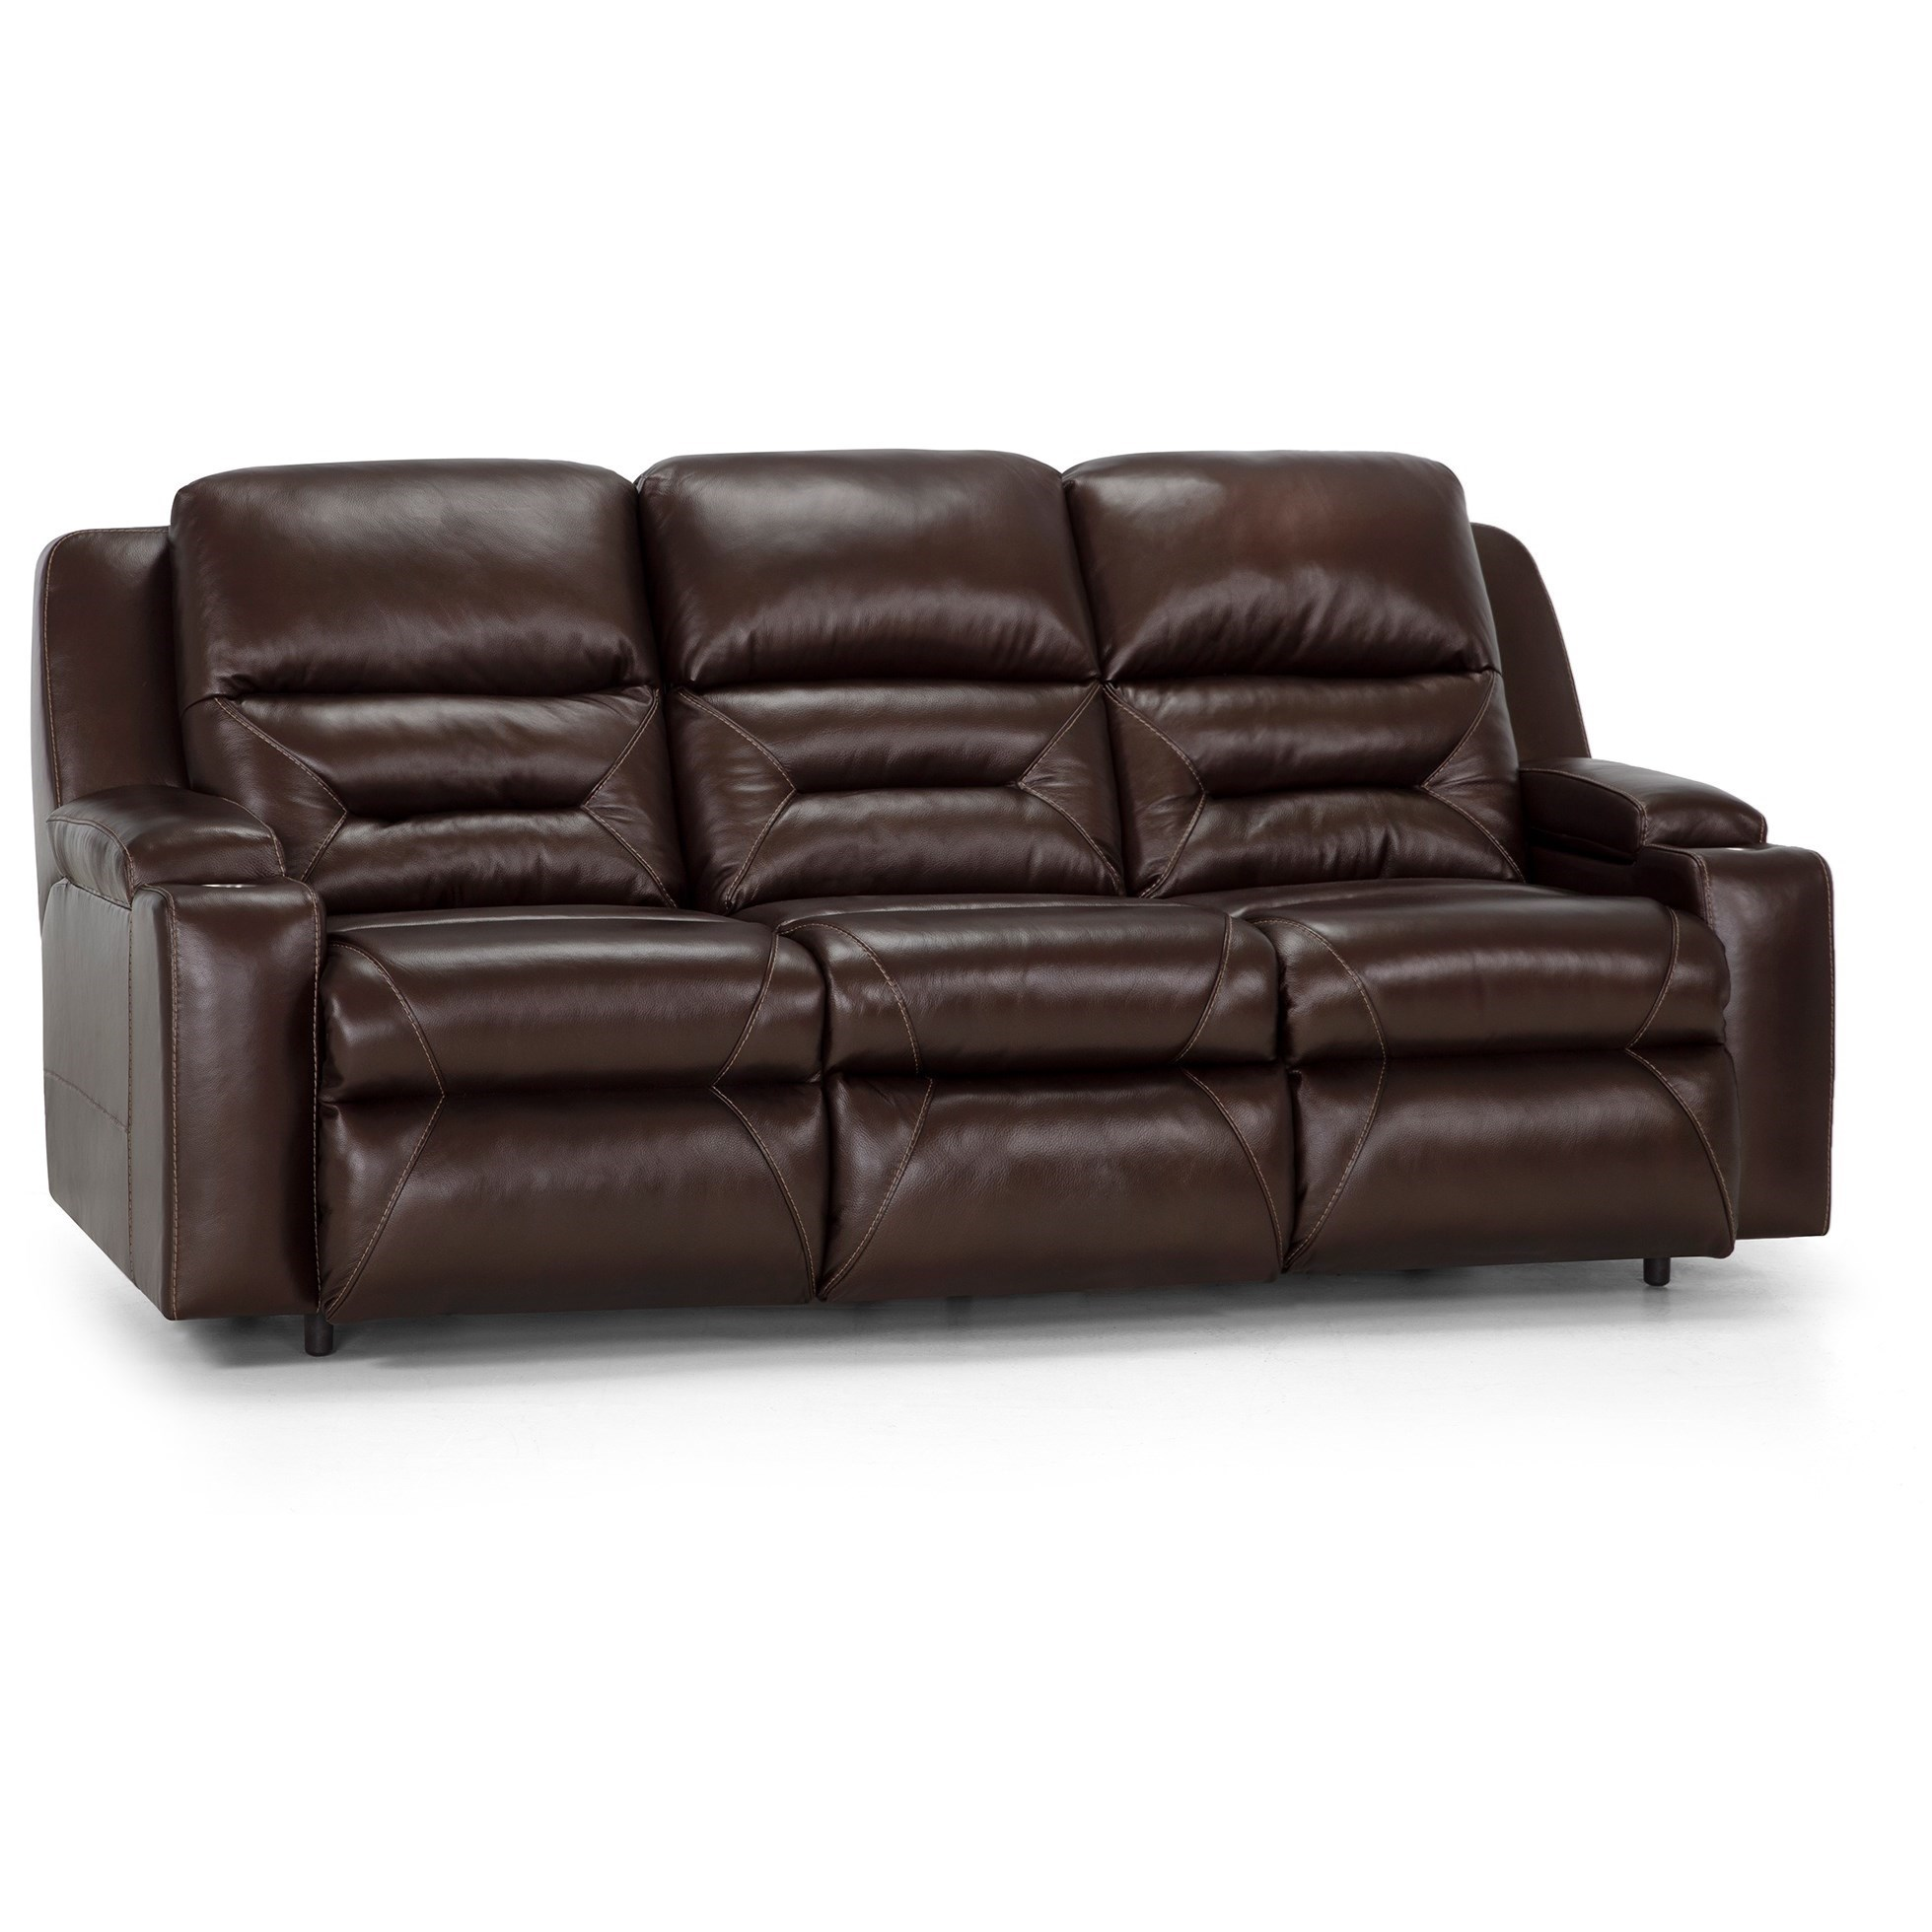 Beacon Power Reclining Sofa by Franklin at Virginia Furniture Market